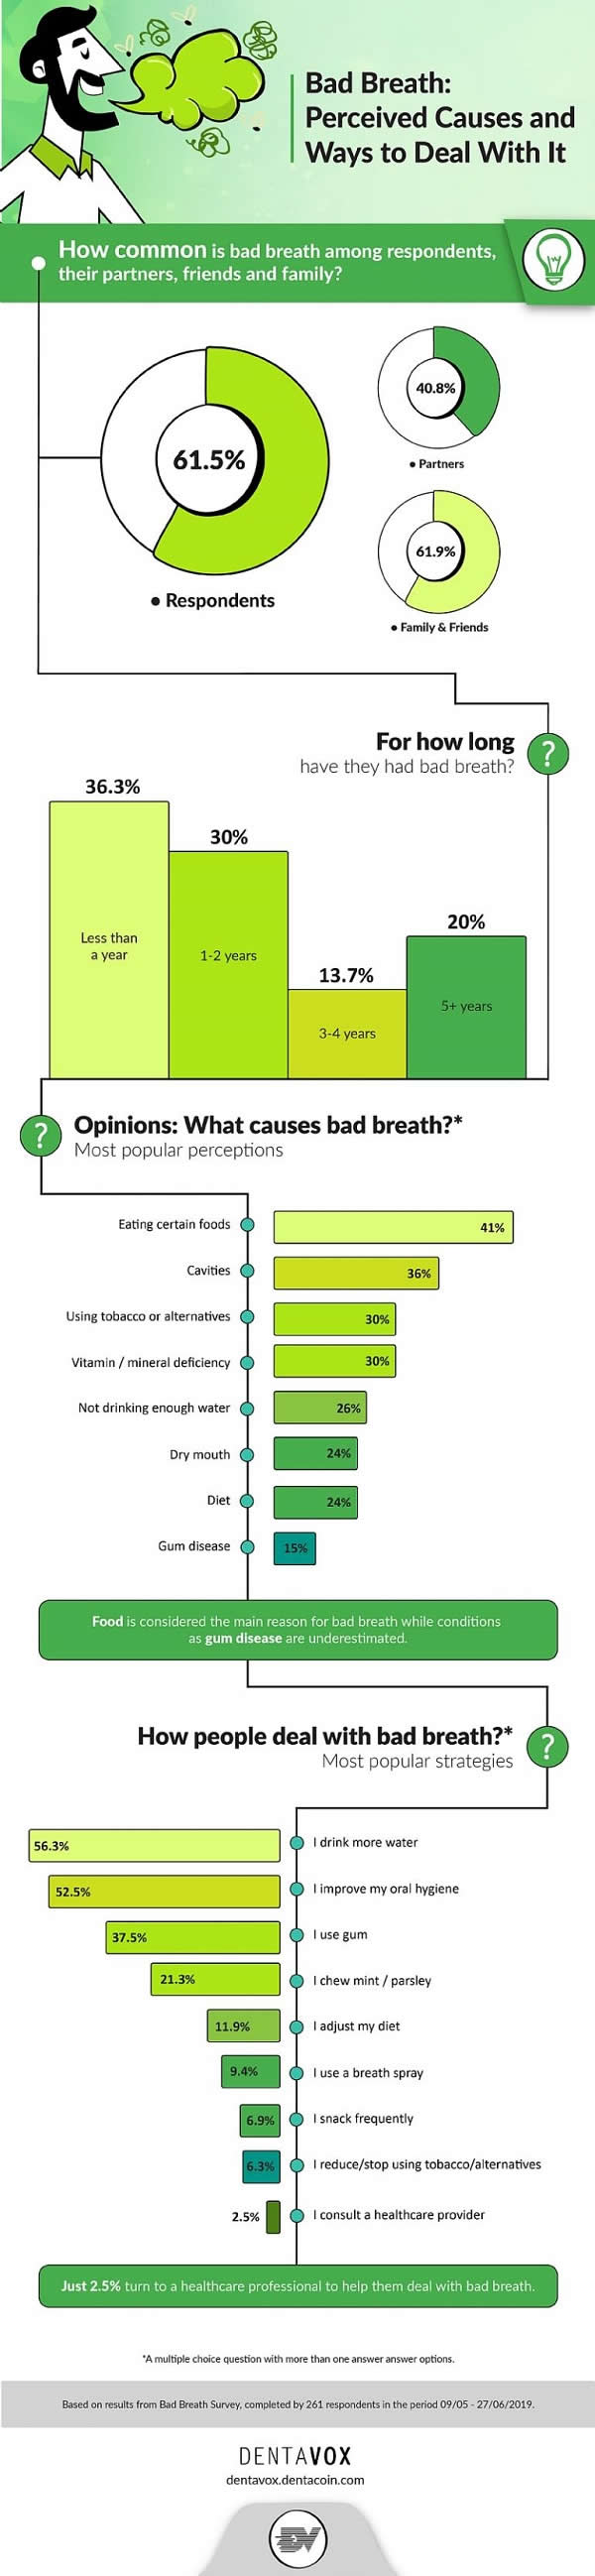 Bad Breath Peceived Causes and Ways to Deal with It